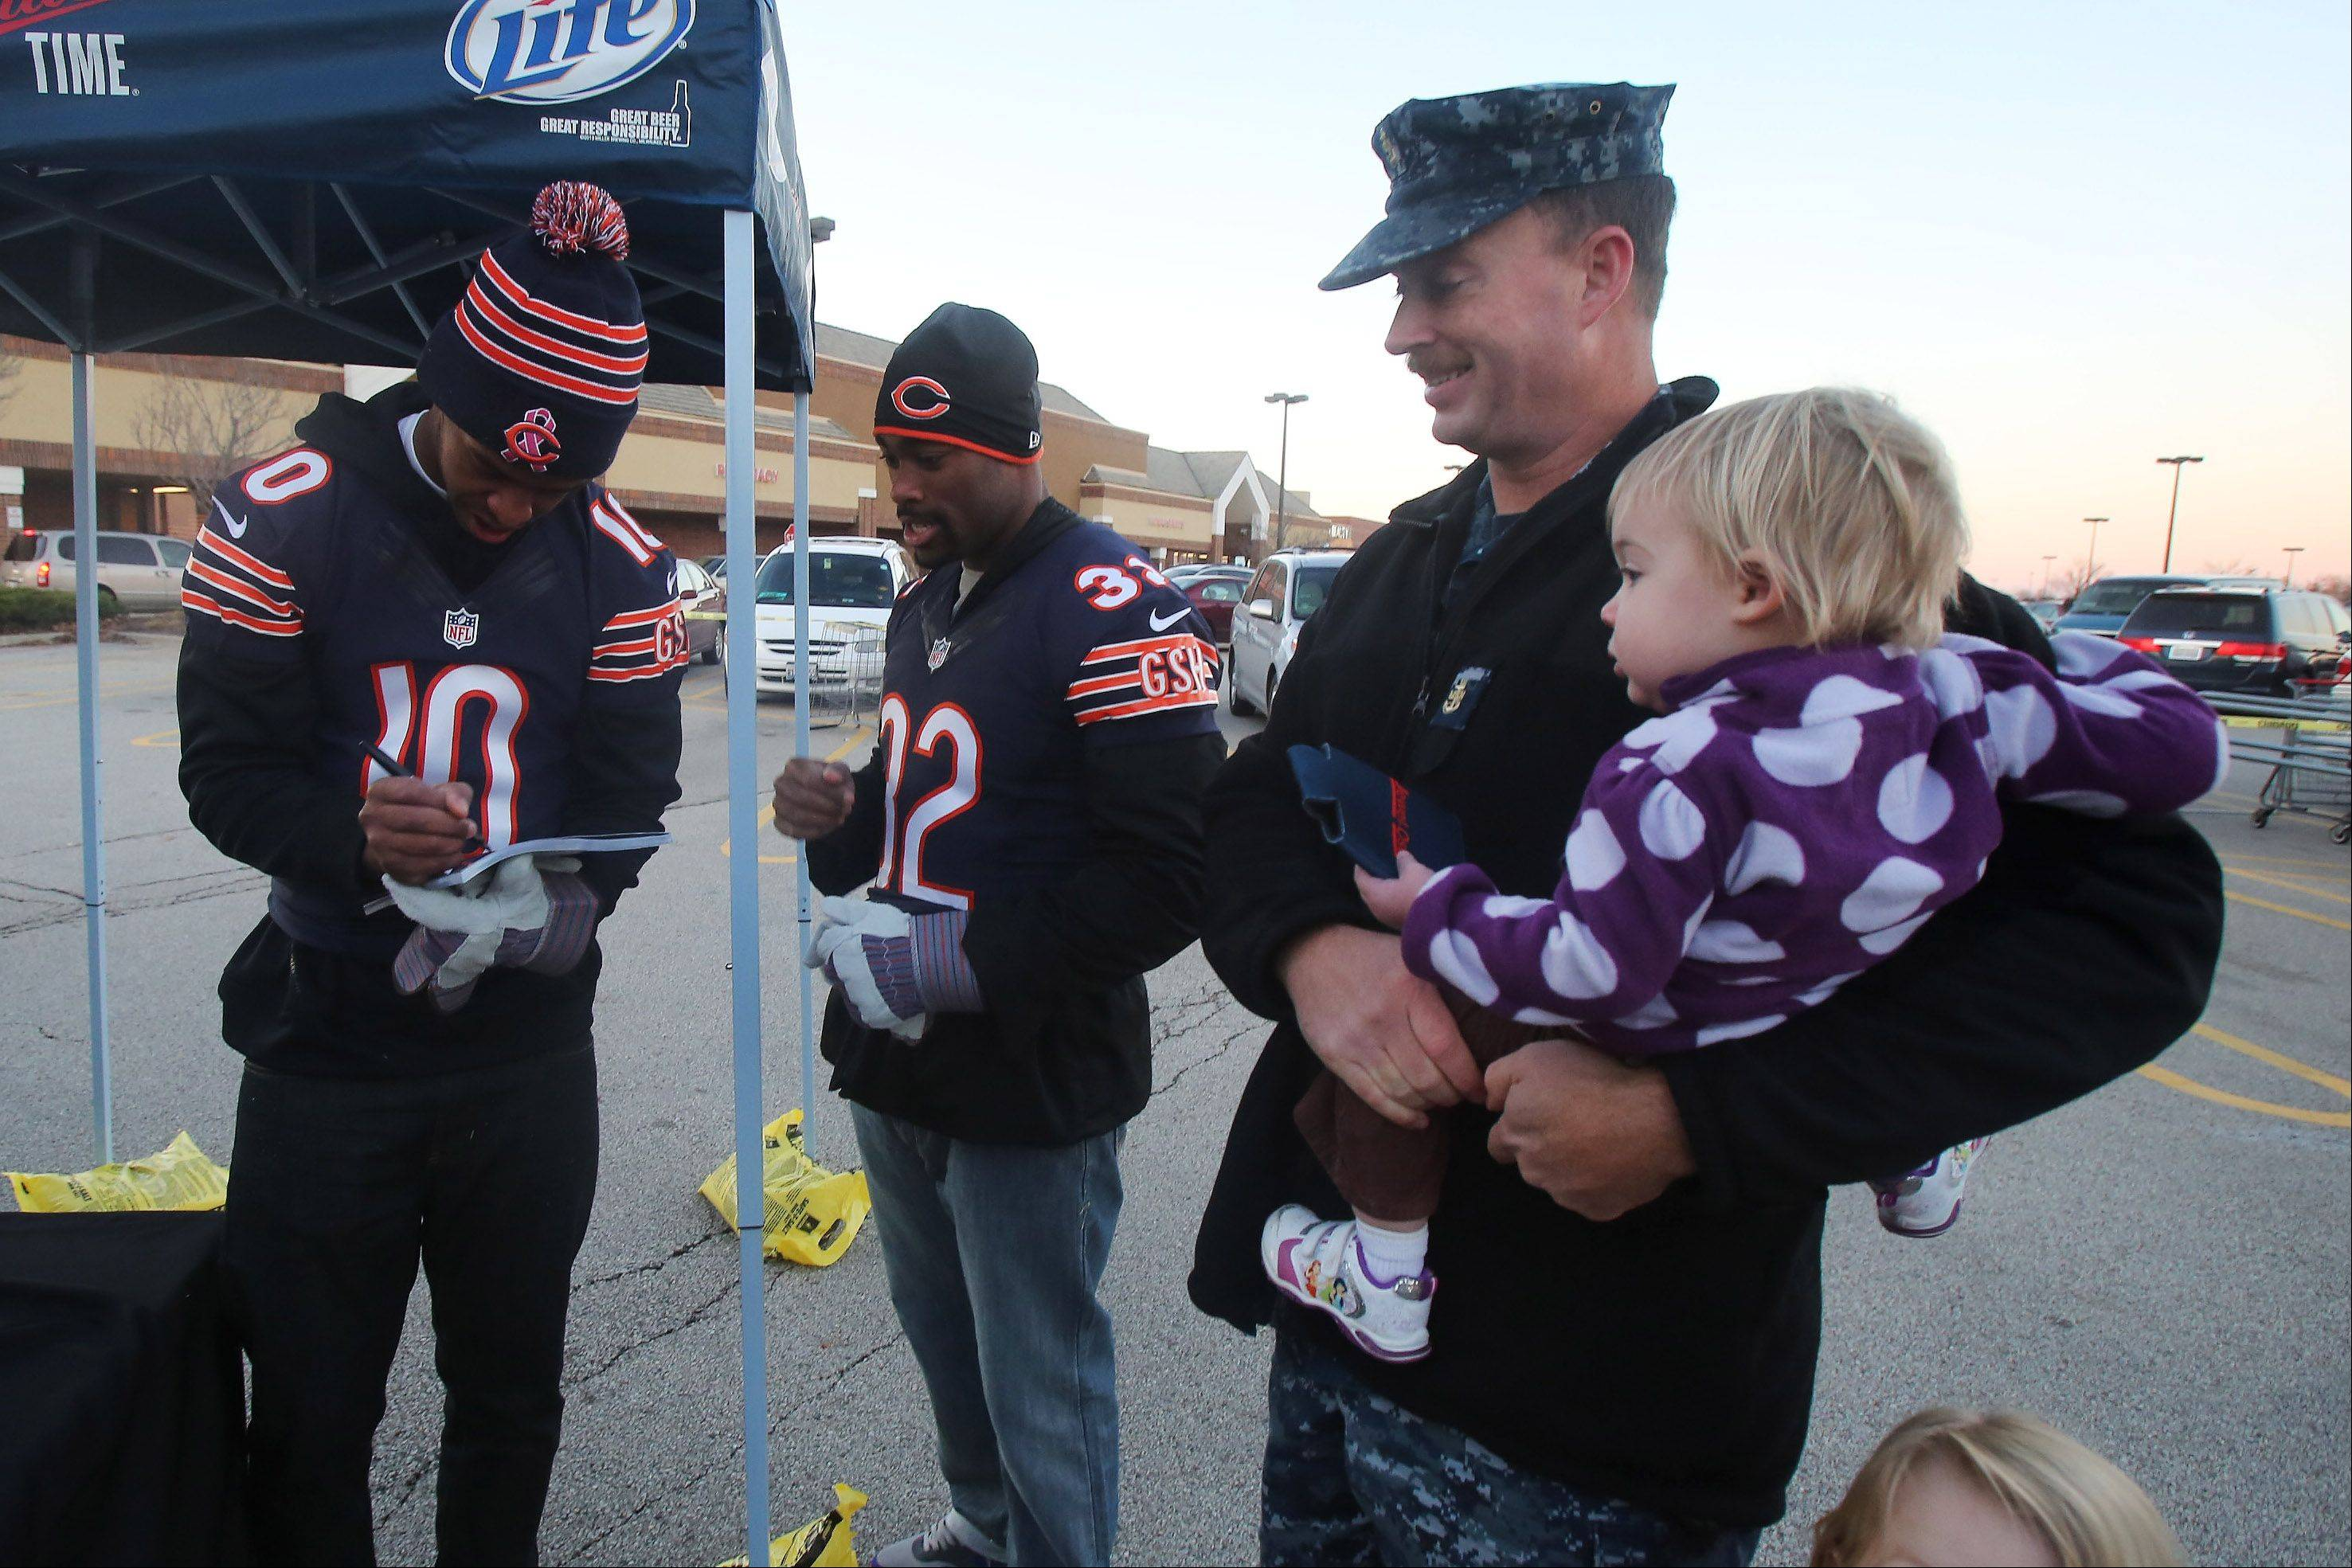 Navy Fire Control Chief Adam Acker holds his daughter Emily as he gets autographs from Chicago Bears rookies Marquess Wilson and Michael Ford as veterans and their families received Thanksgiving meals and met Bears players at Jewel Osco in Gurnee on Monday. MillerCoors teamed up with Operation Homefront, the Chicago Bears, Bears Care, and Jewel Osco to donate turkeys and side dishes to 400 military families over two days.